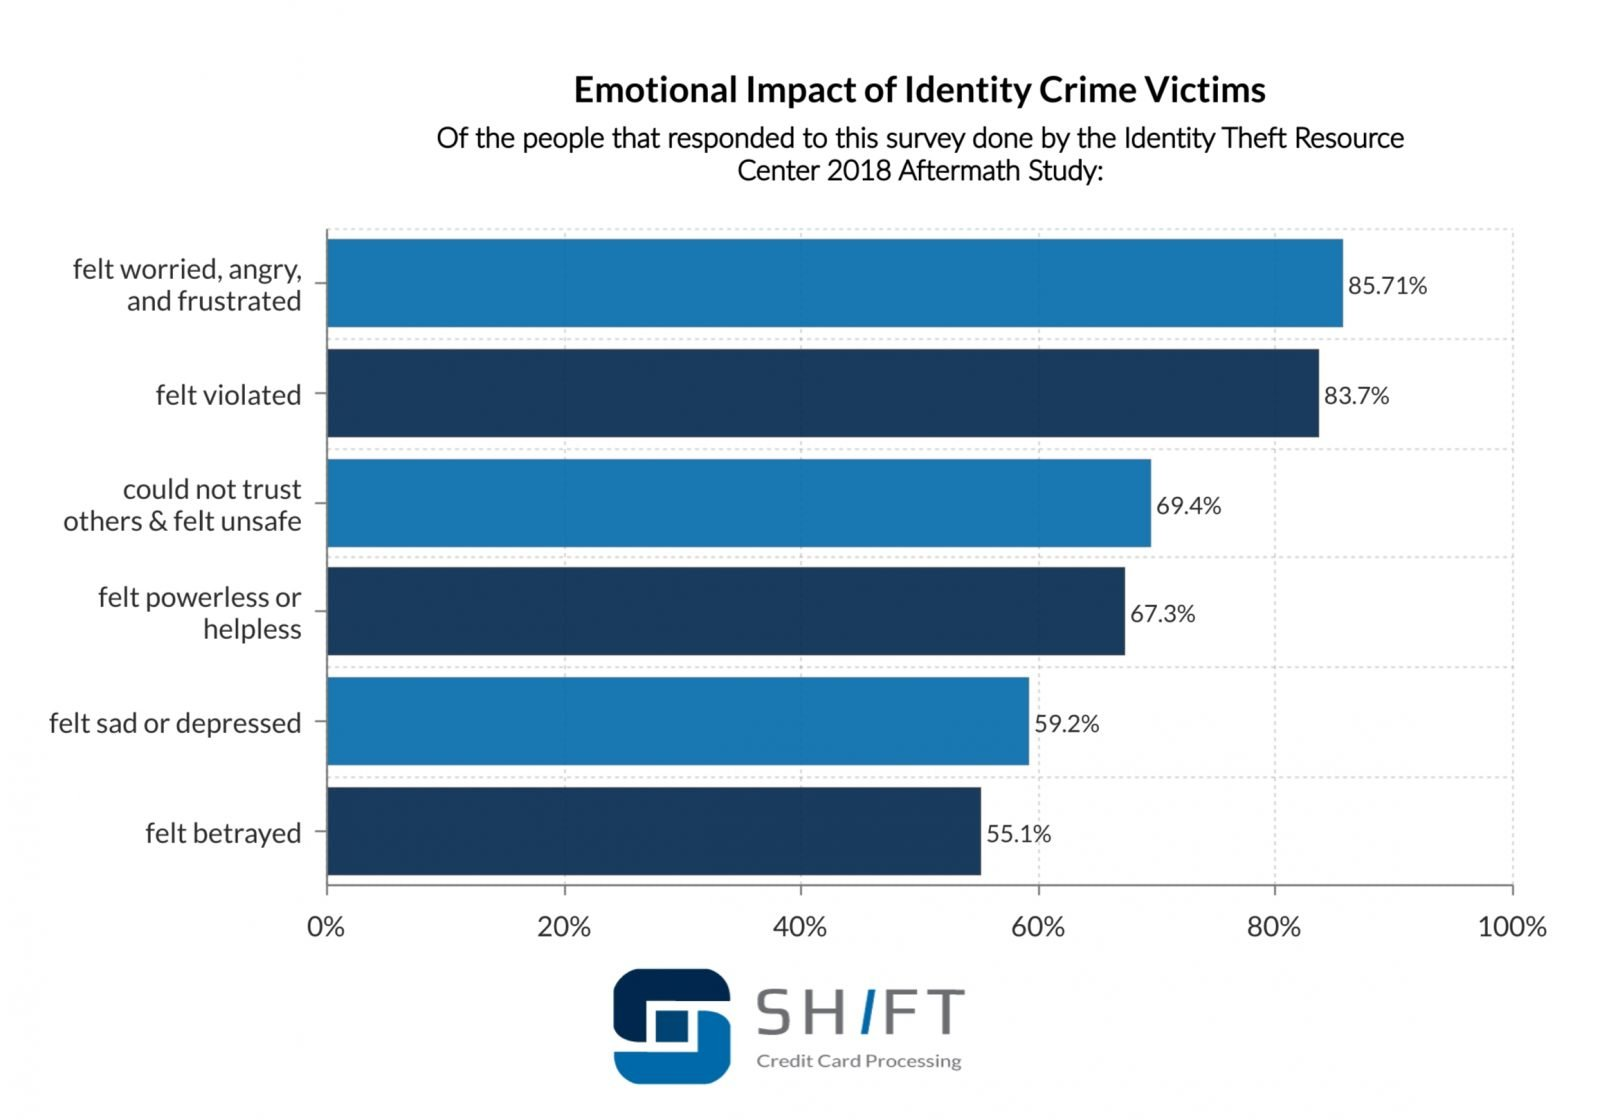 bar graph showing the emotional impact of identity crime